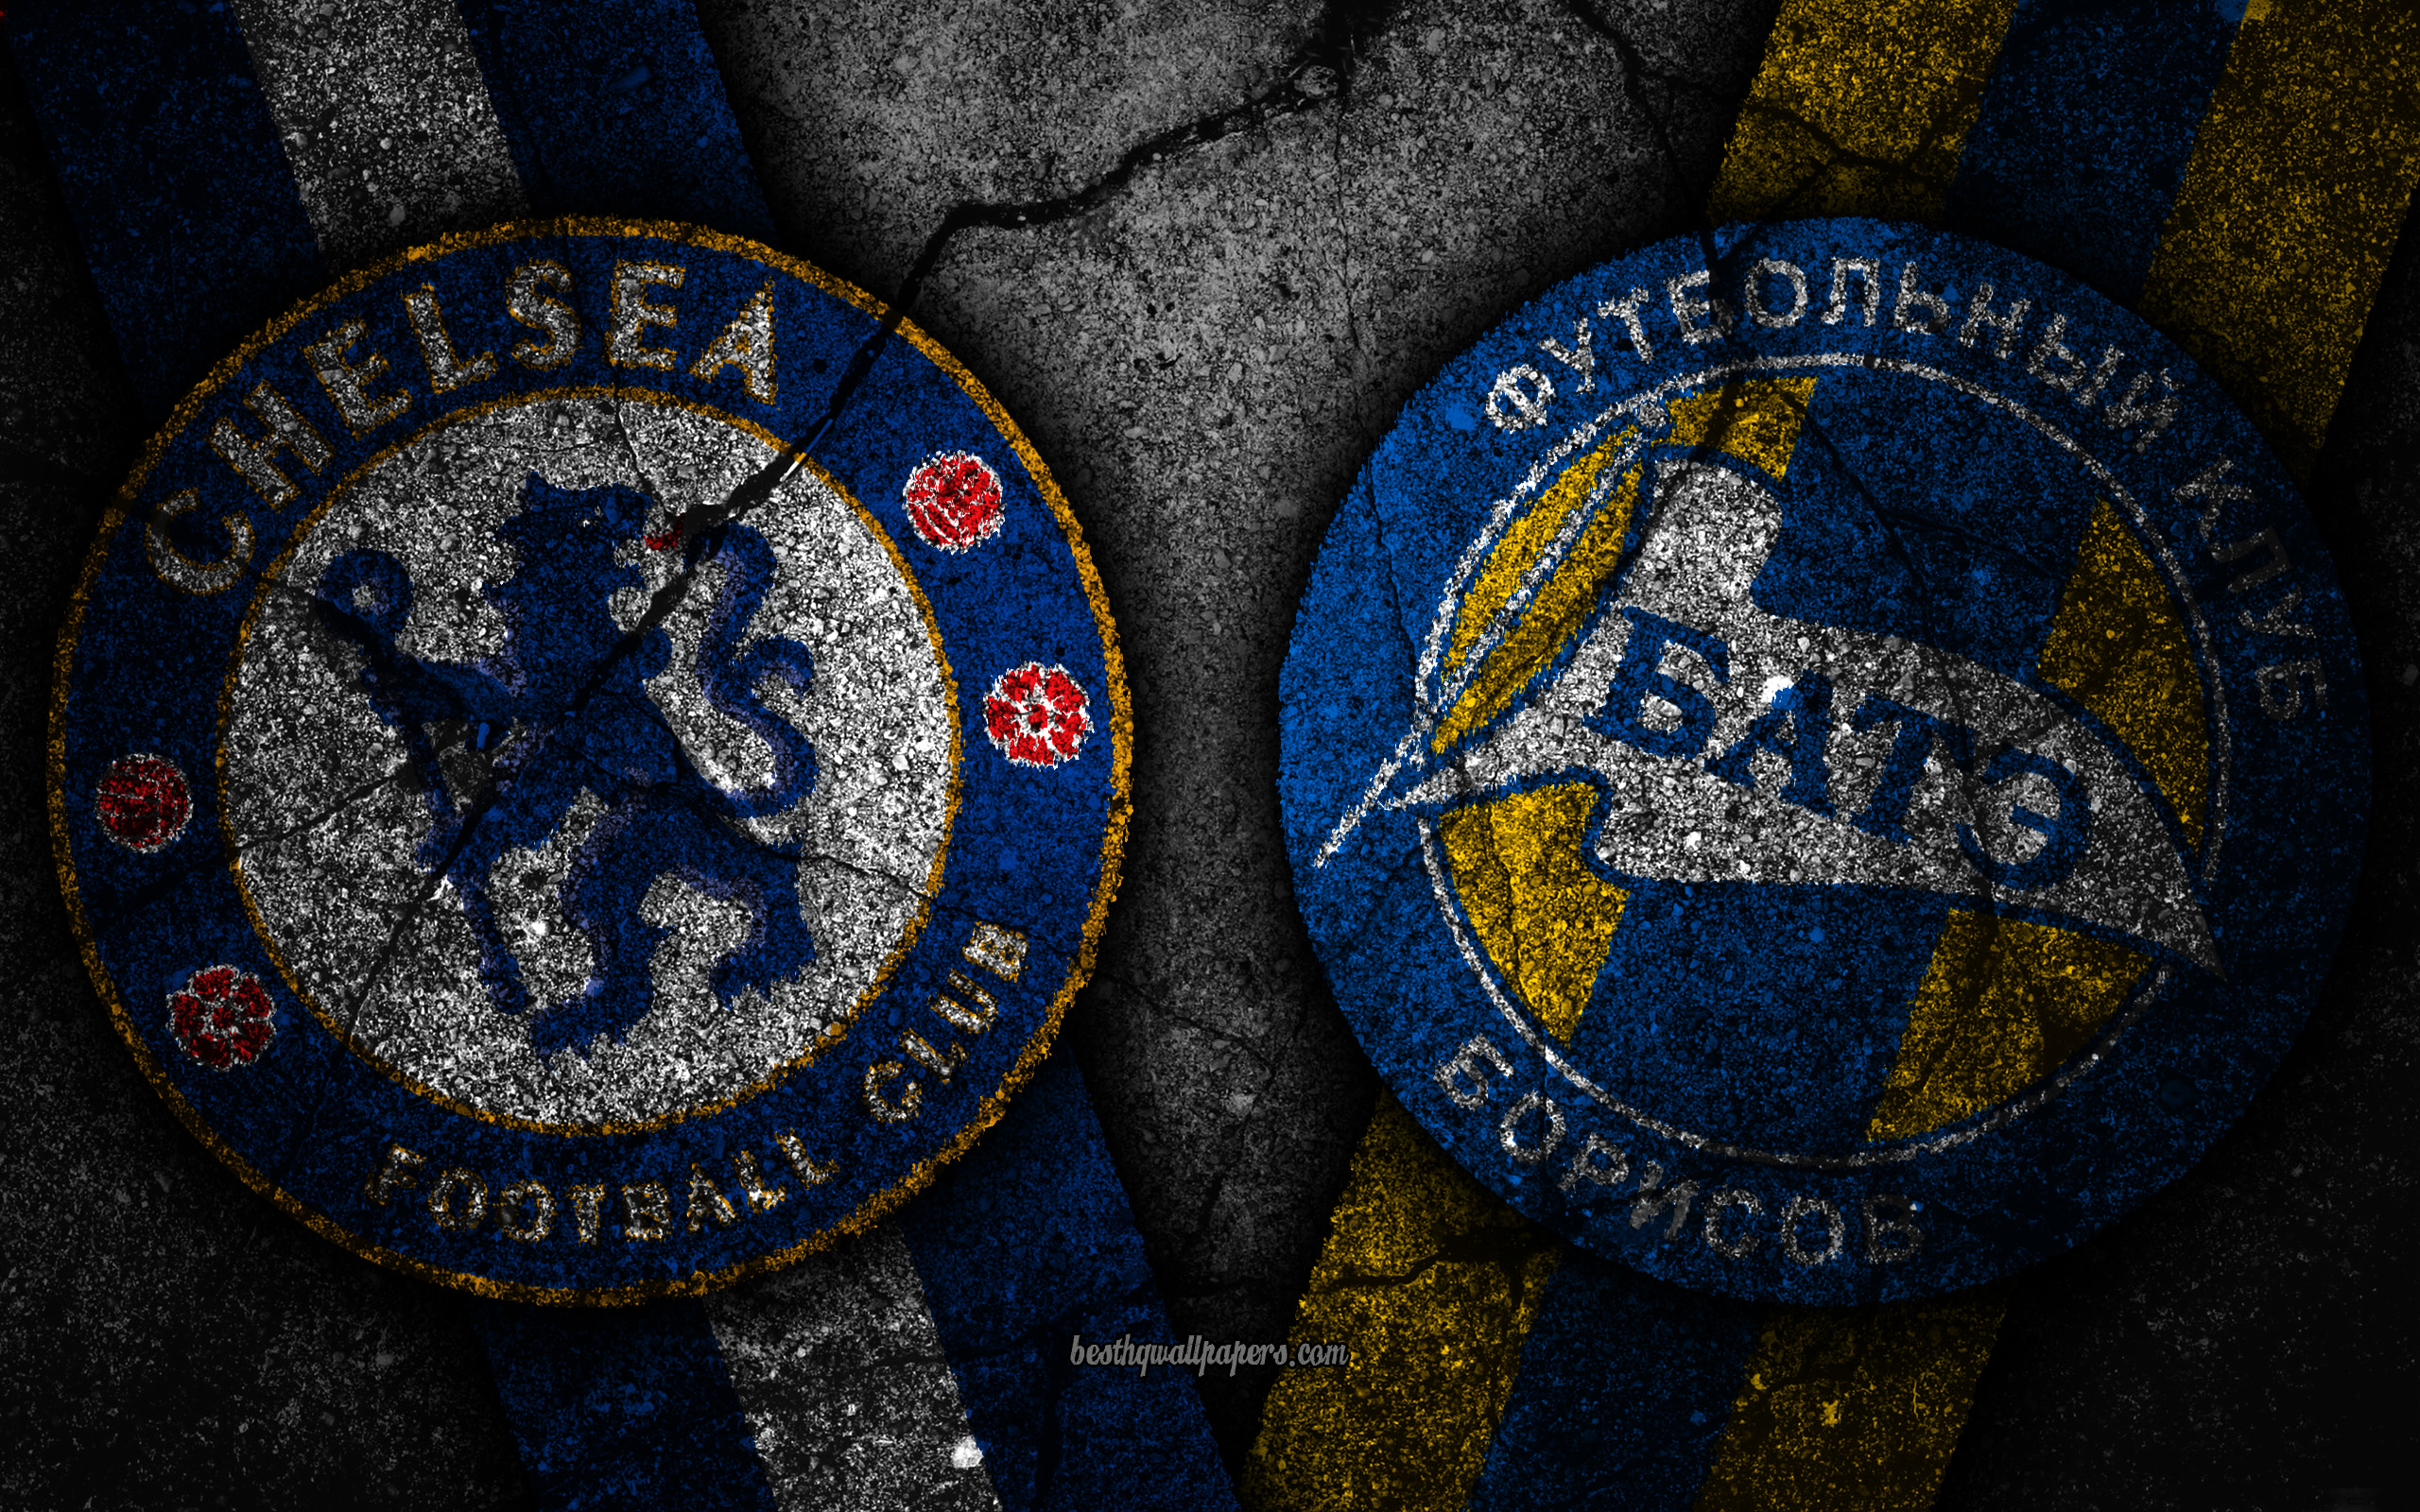 chelsea-vs-bate-uefa-europa-league-group-stage-round-3-creative.jpg